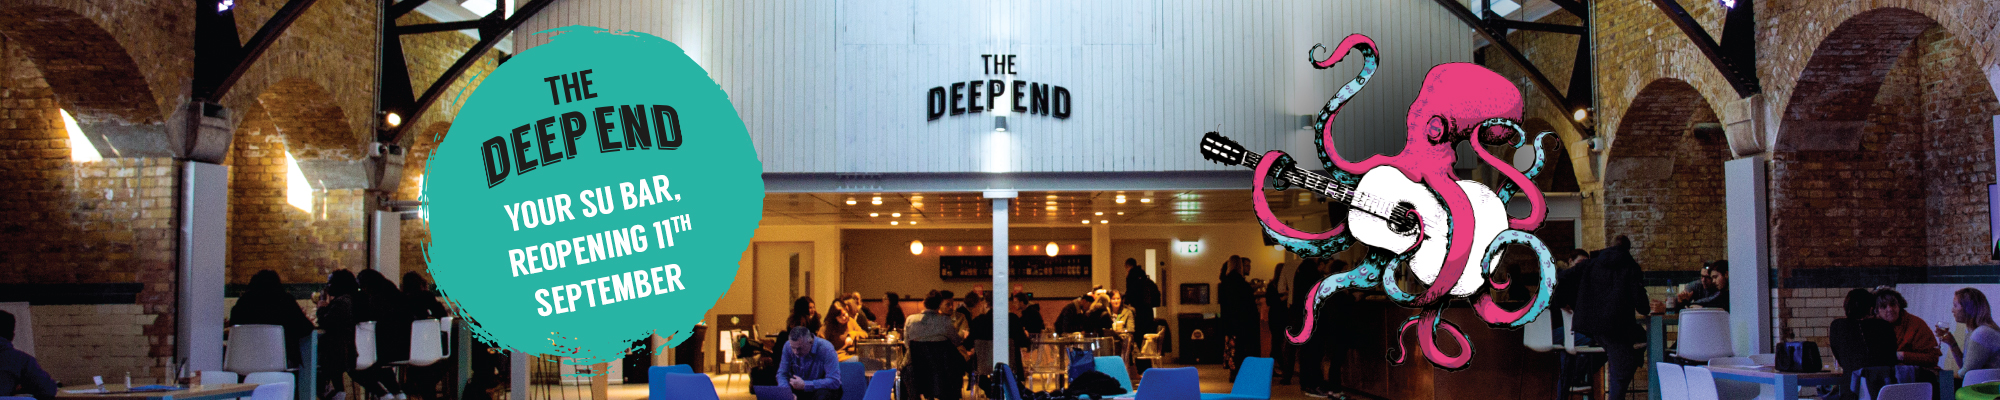 Picture the Deep End with logo and branding on top